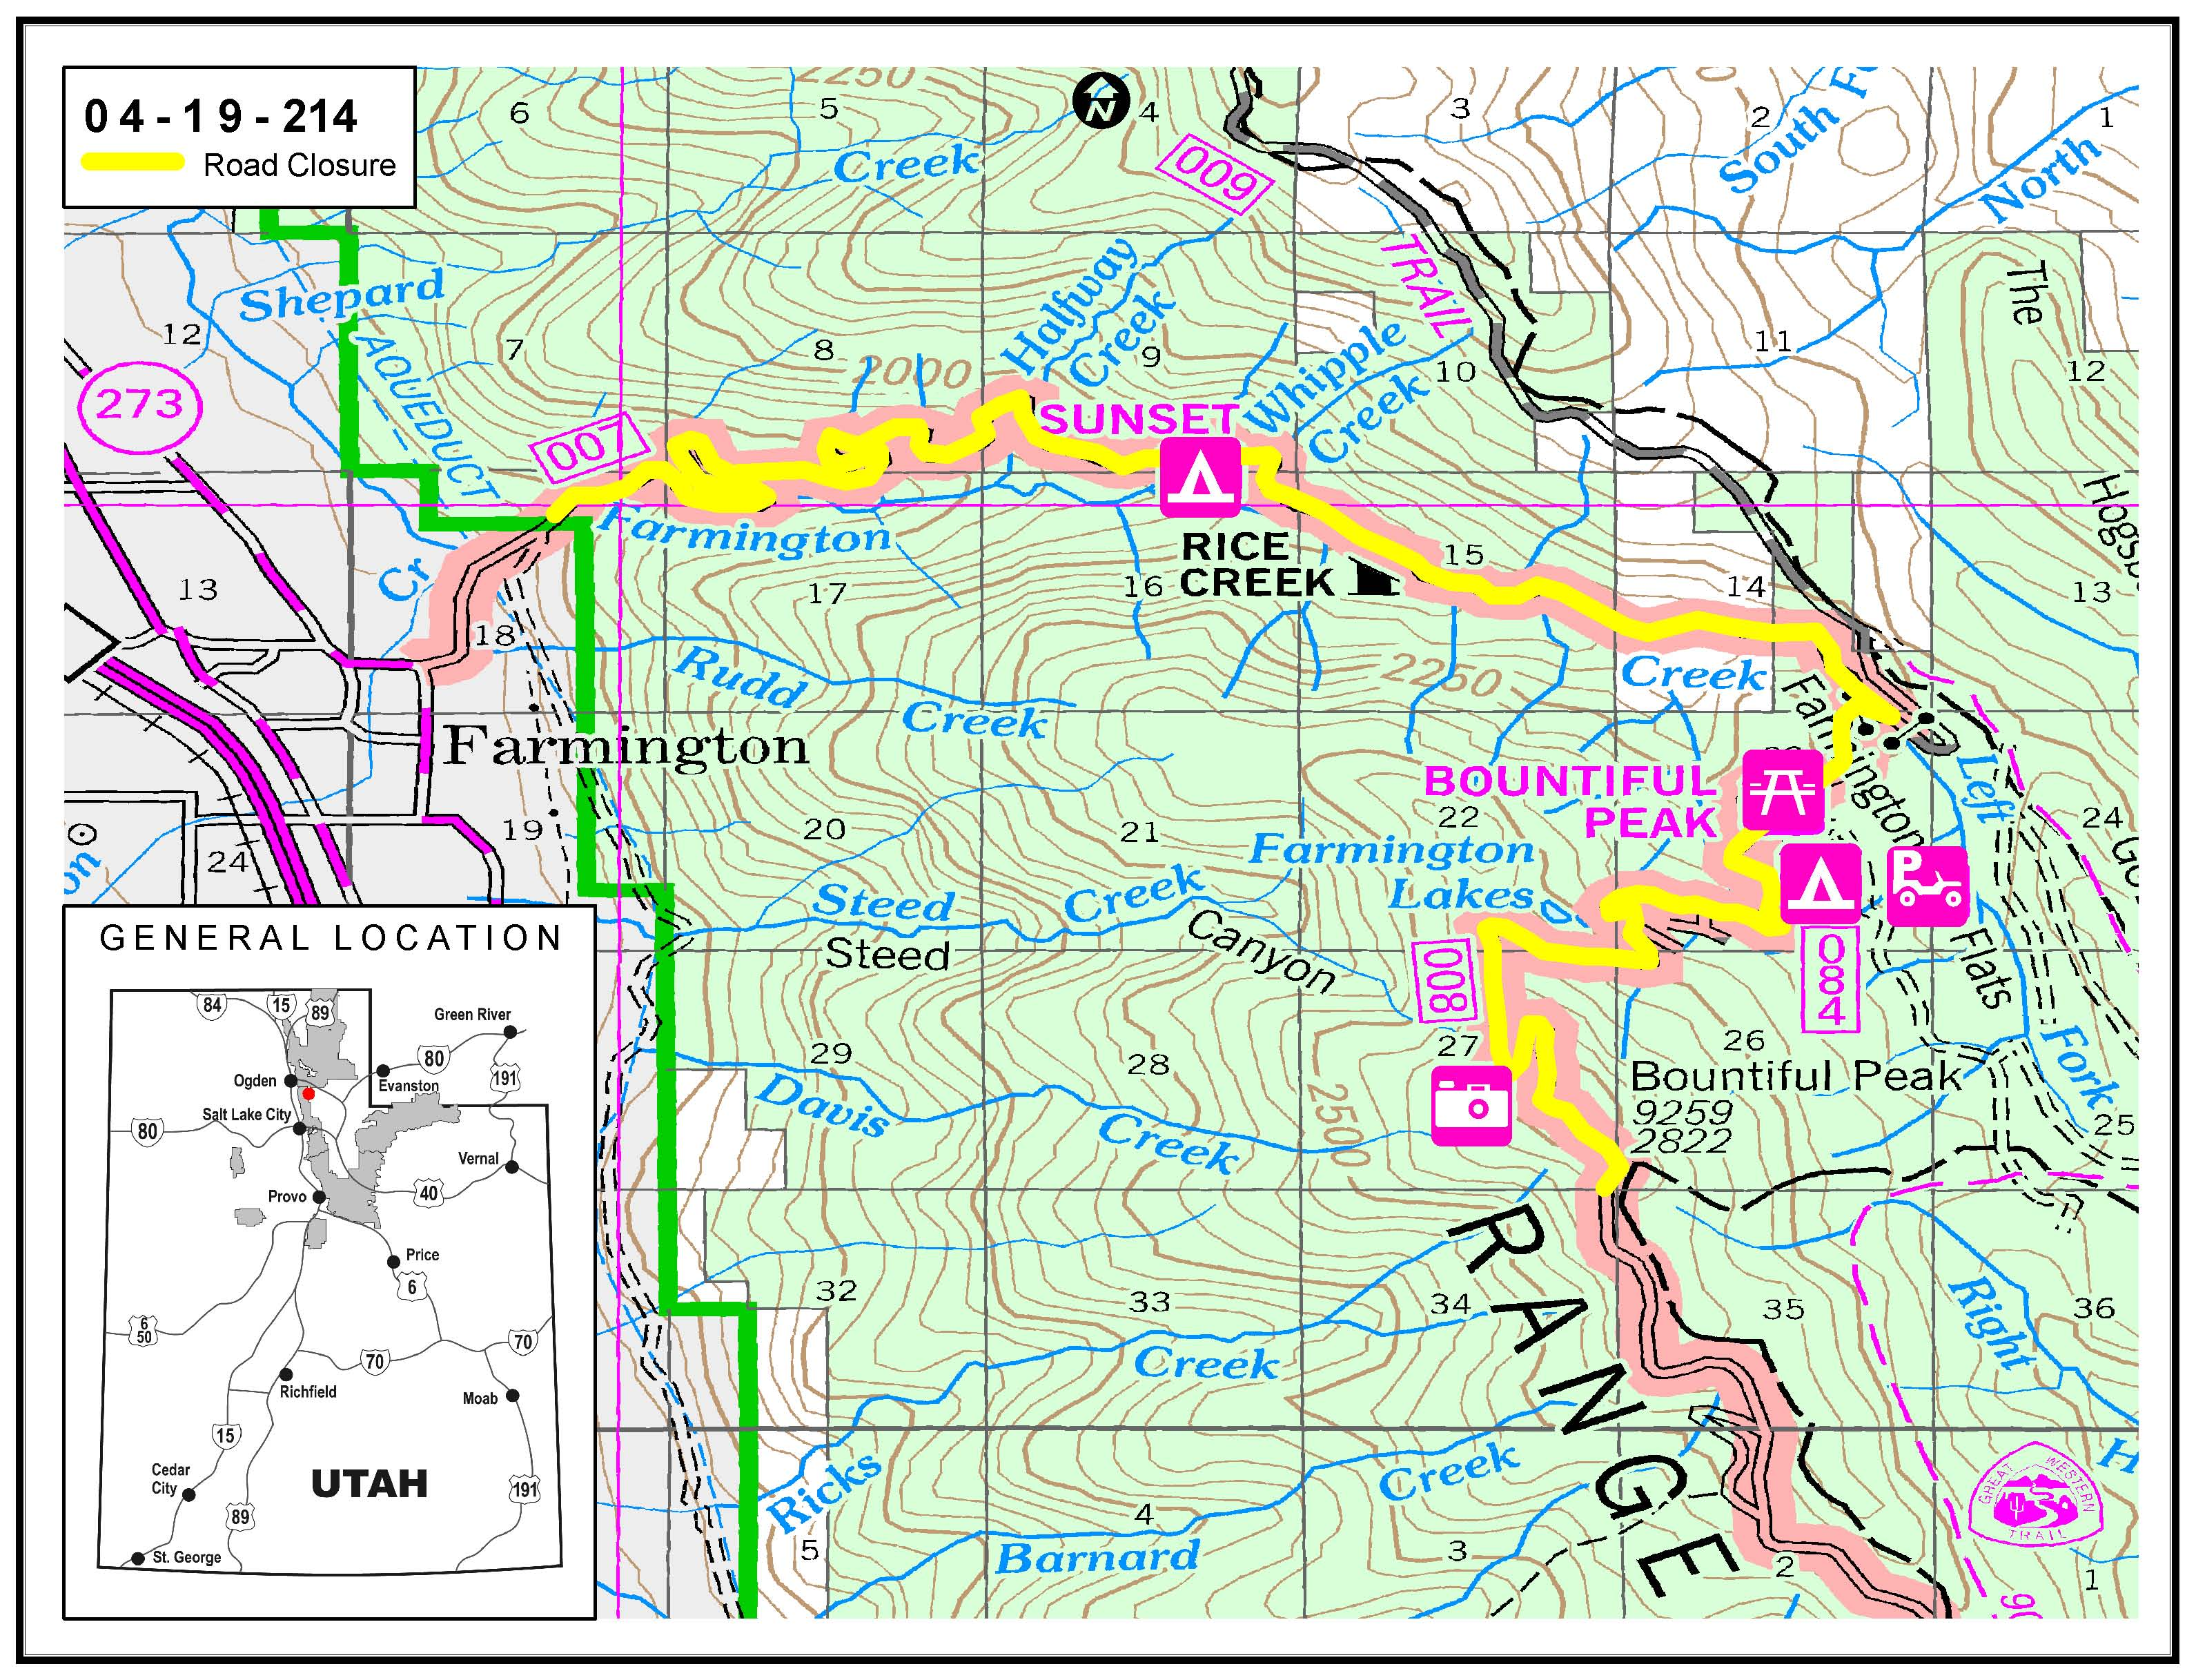 Uinta-Wasatch-Cache National Forest - News & Events on woodland road map, lake county colorado map, lee county road map, salt lake aerial, albion basin road map, st. mary's county road map, pleasant grove road map, macon county road map, santa rosa county road map, logan road map, south ogden road map, salt lake florida, prince george's county road map, brigham city road map, ballpark road map, springville road map, oakland road map, college of lake county il map, wichita county road map, salt lake nm,